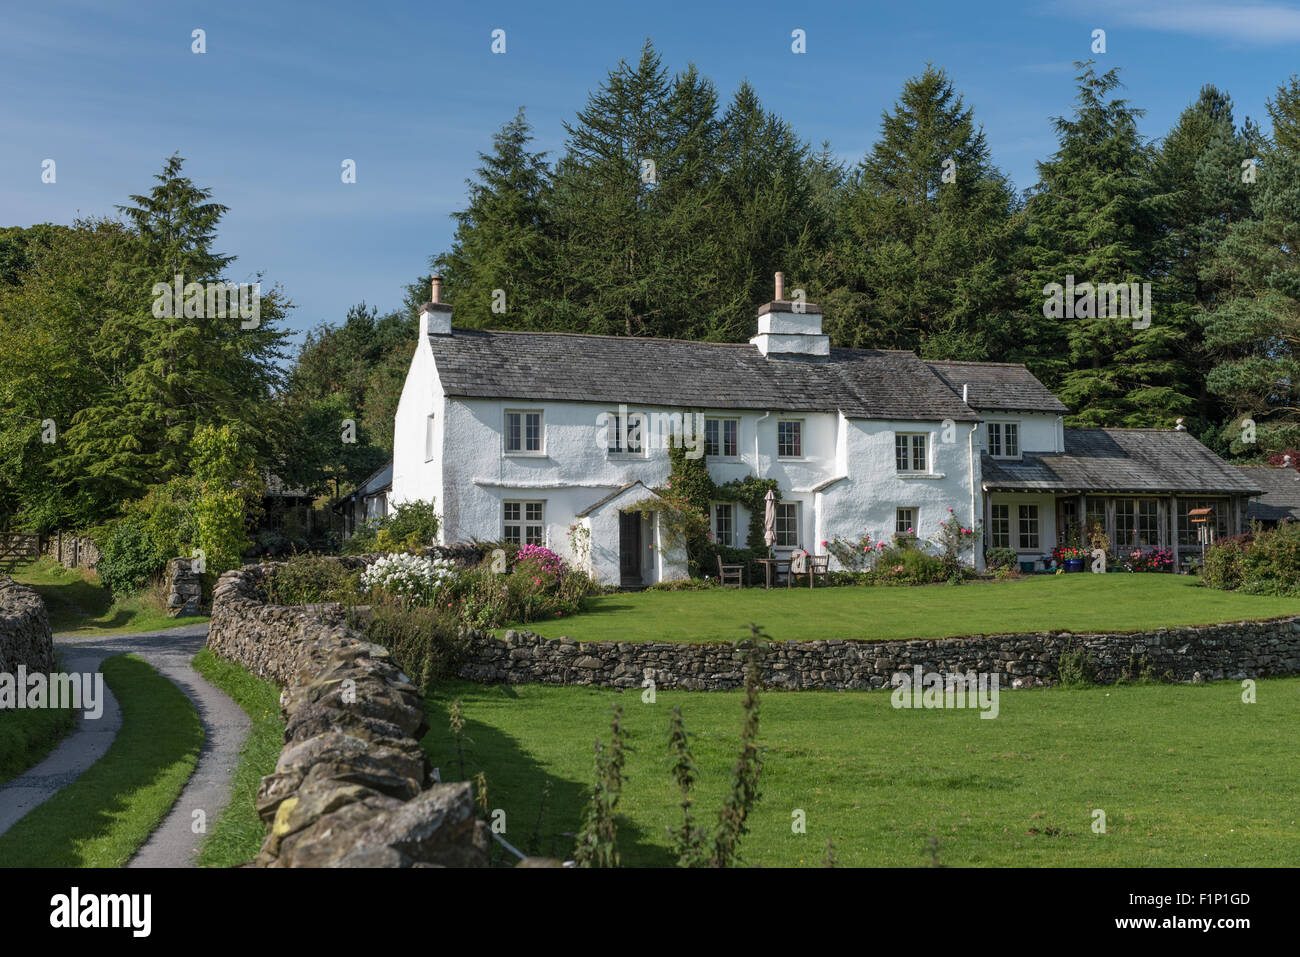 Croft Head in the Kentmere Valley of Cumbria - Stock Image